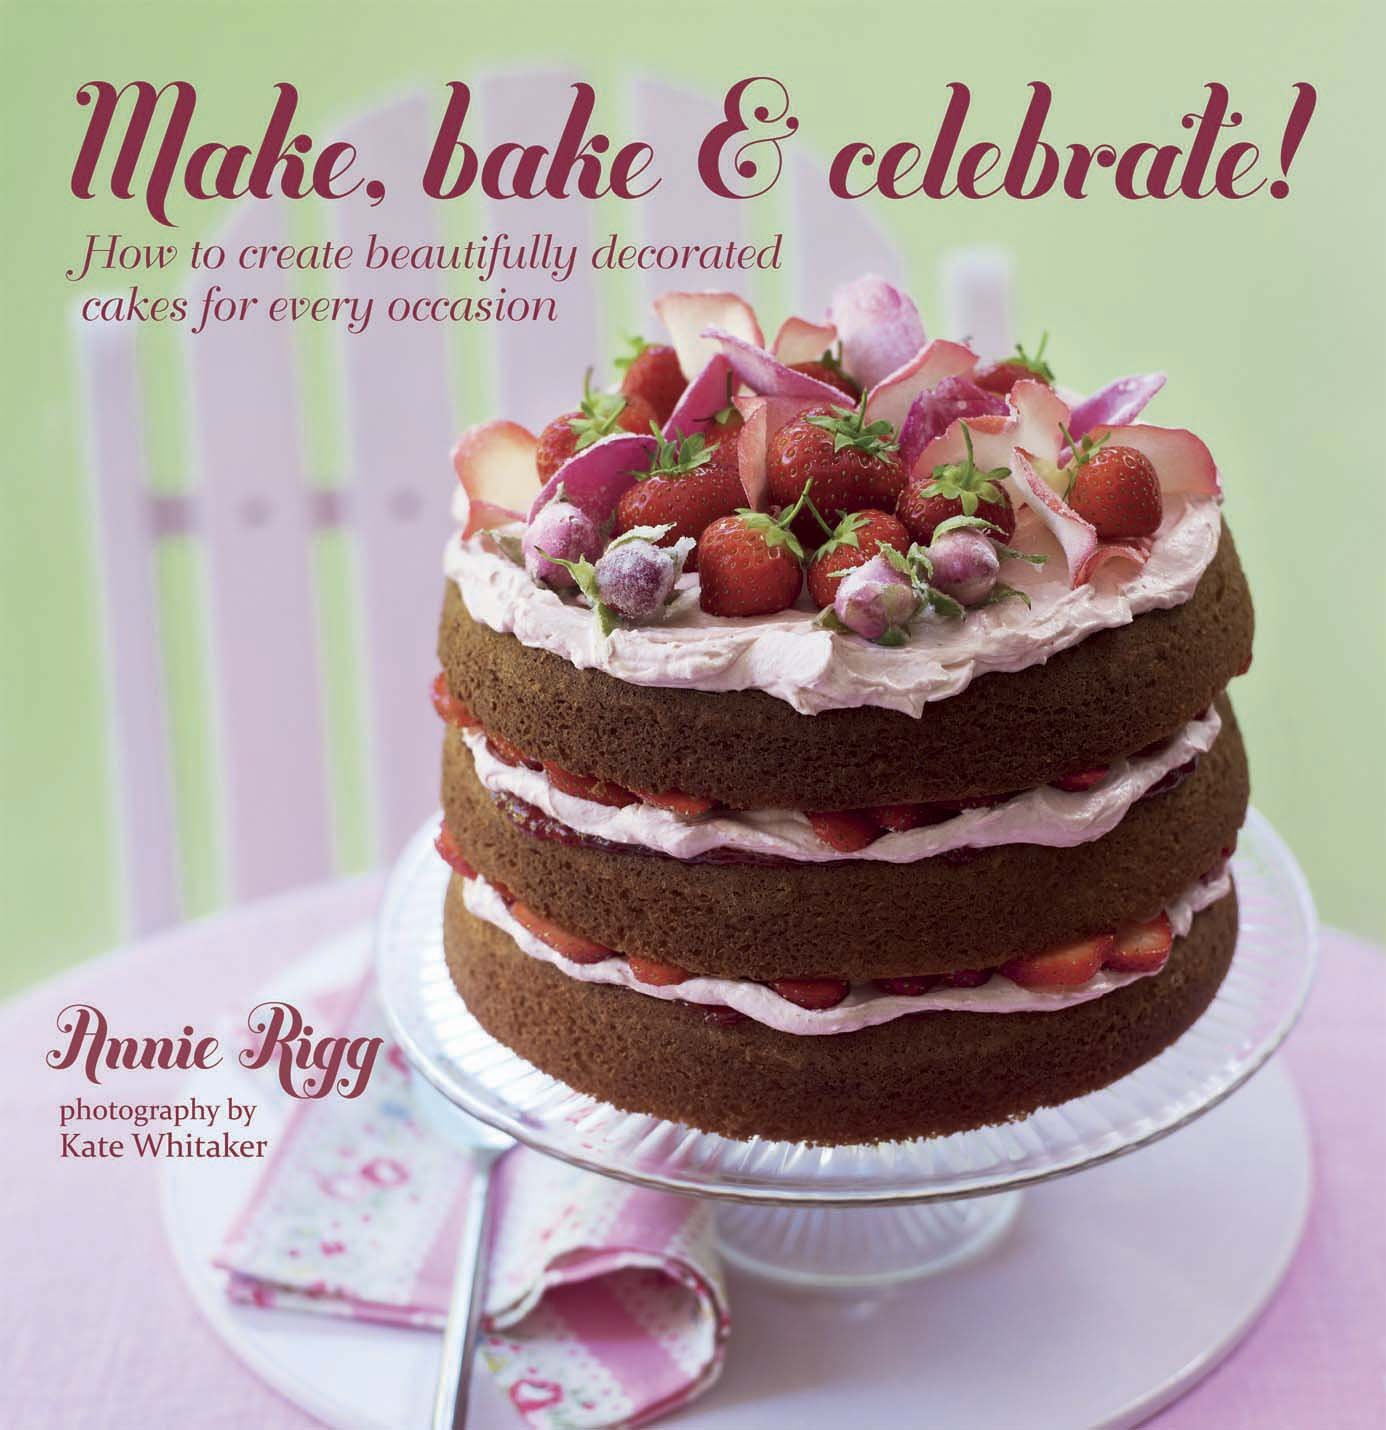 How To Create Beautifully Decorated Cakes For Every Occasion Amazonde Annie Rigg Kate Whitaker Fremdsprachige Bucher